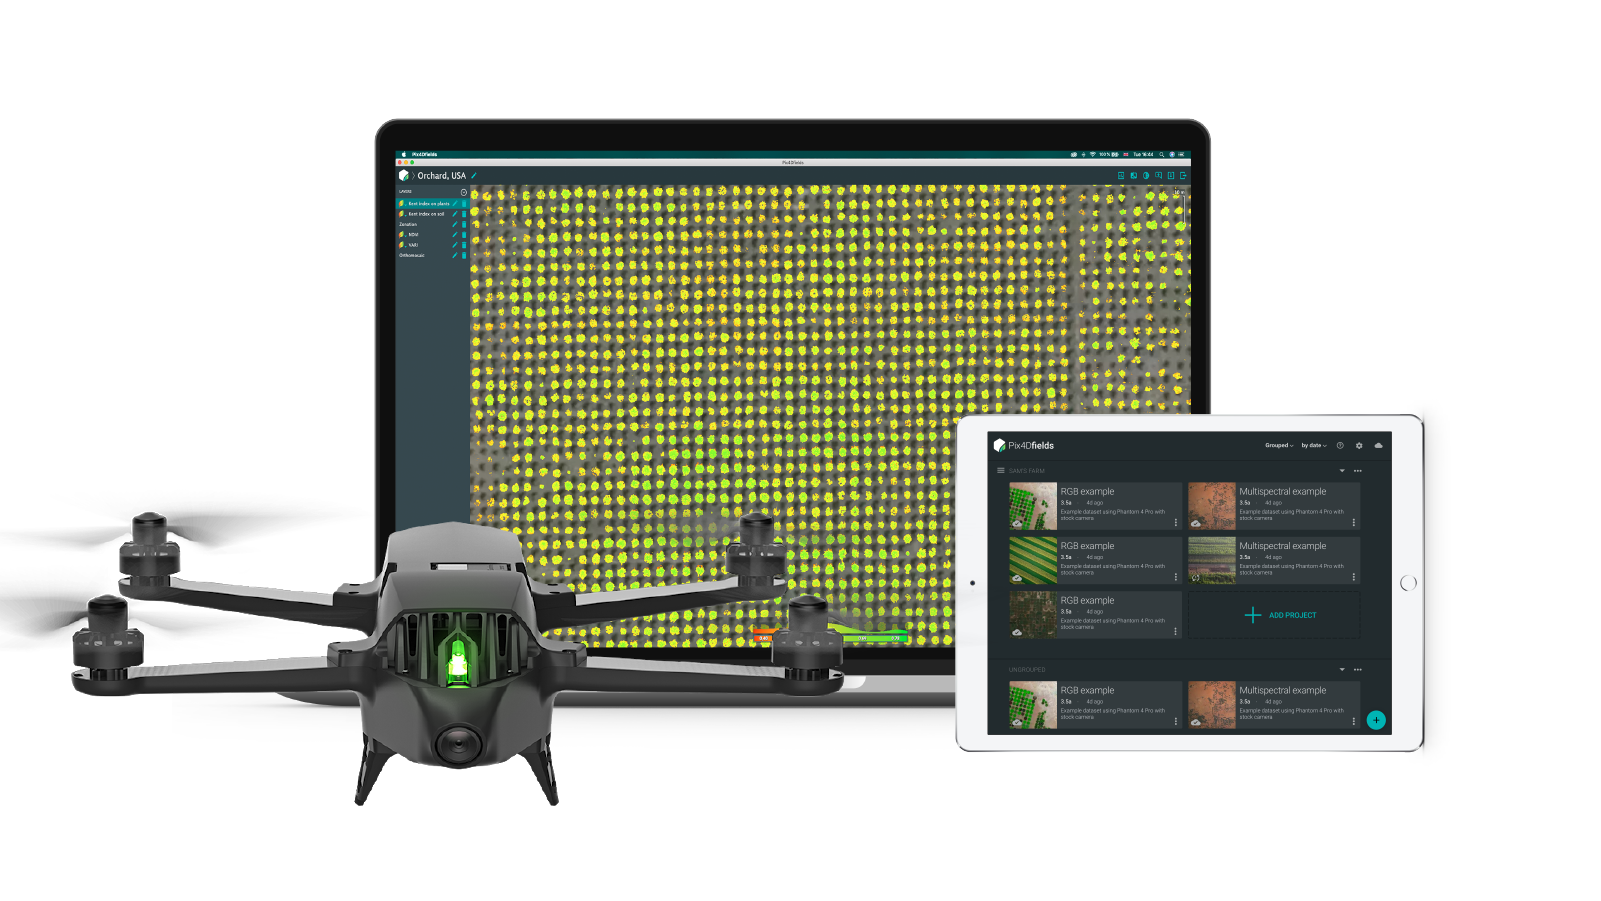 All in one agriculture mapping solution with Pix4dfields software and Parrot Bluegrass drone and Sequoia multispectral sensor